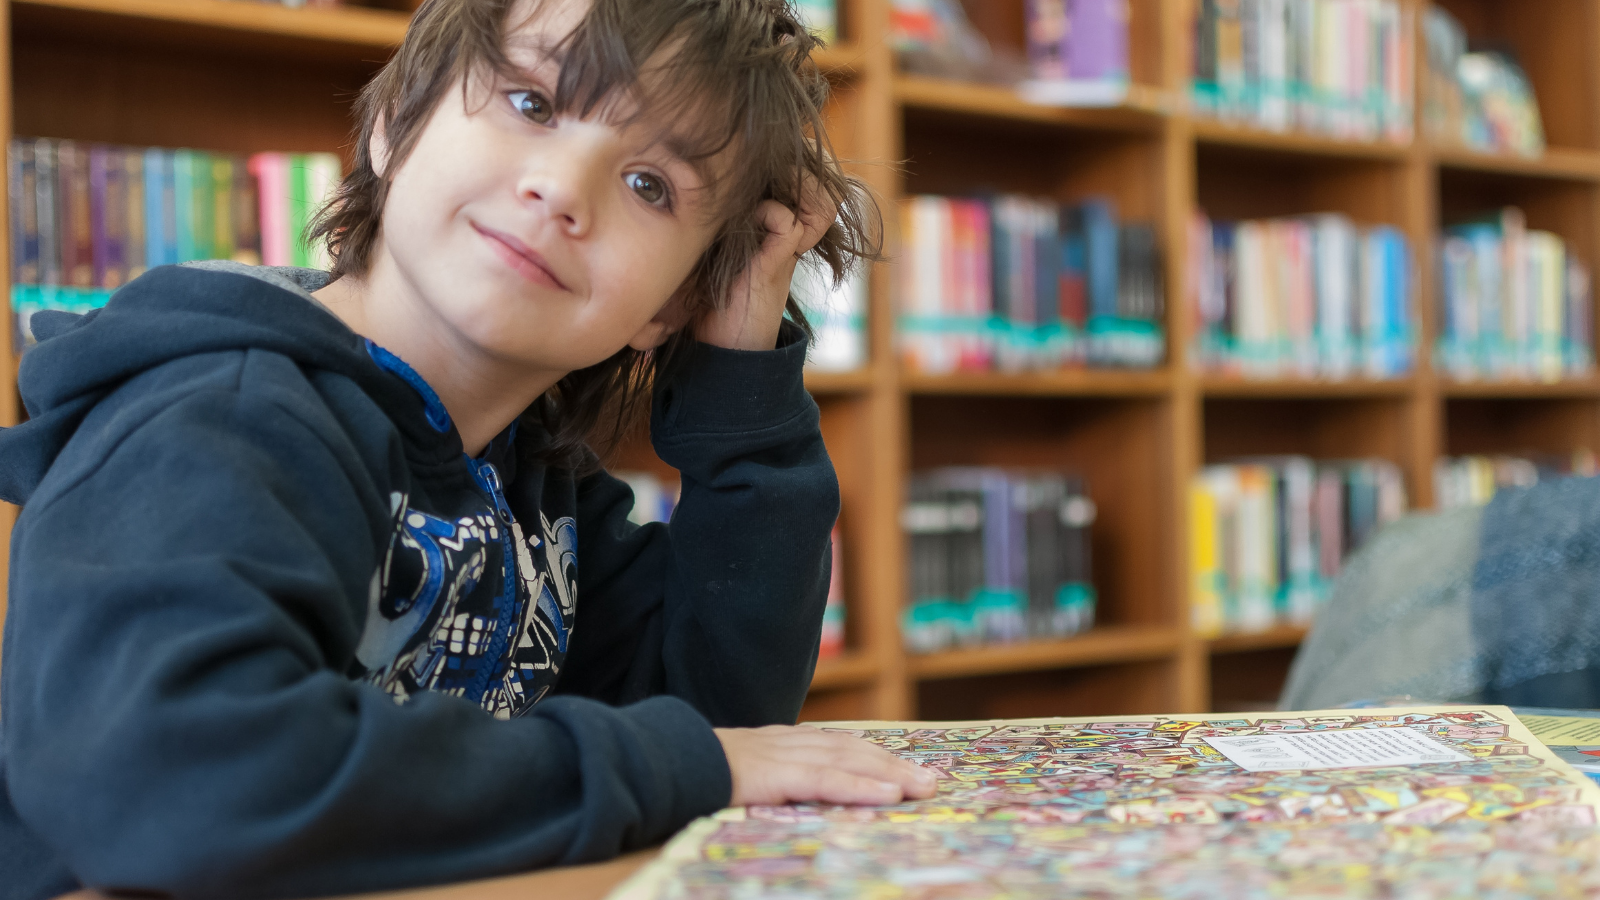 Image of Child in Library